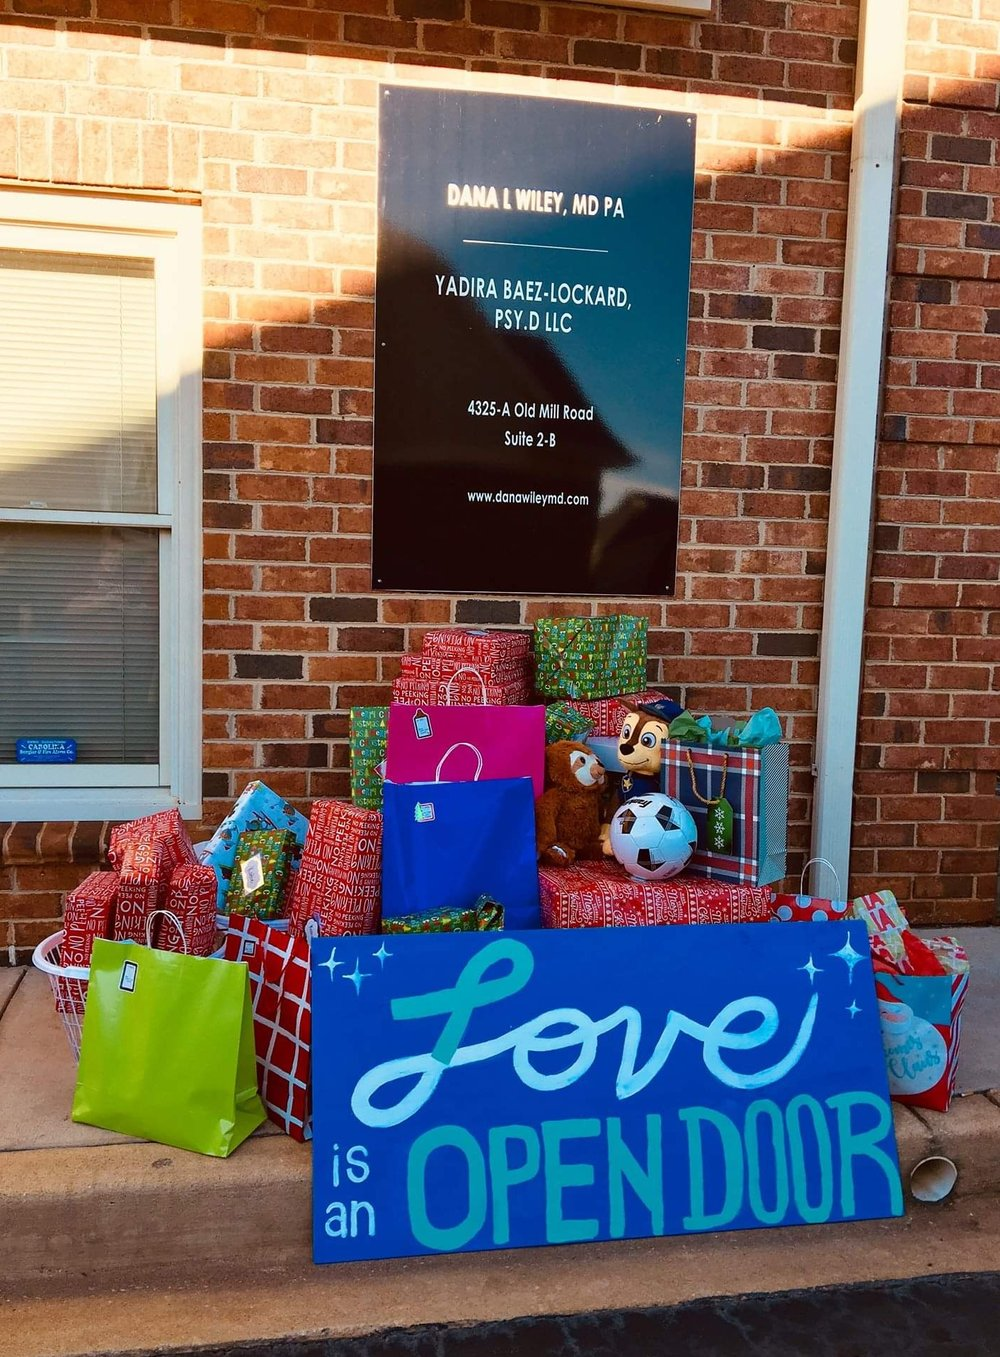 Christmas gifts donated to a family in need.